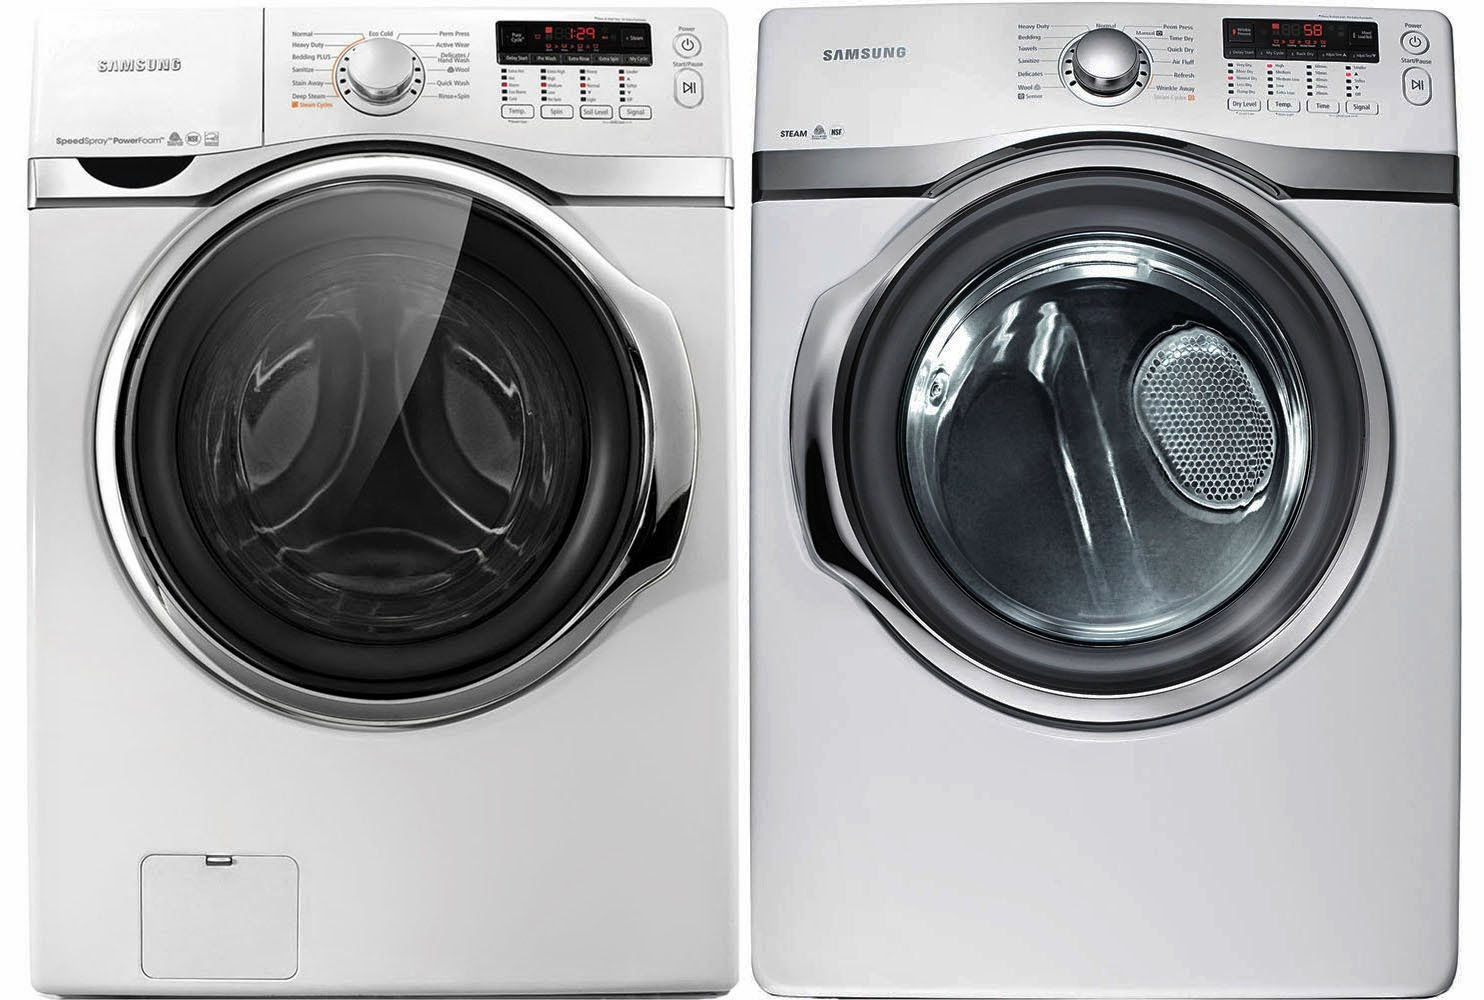 Samsung 4.0 Steam Washer and Electric Dryers